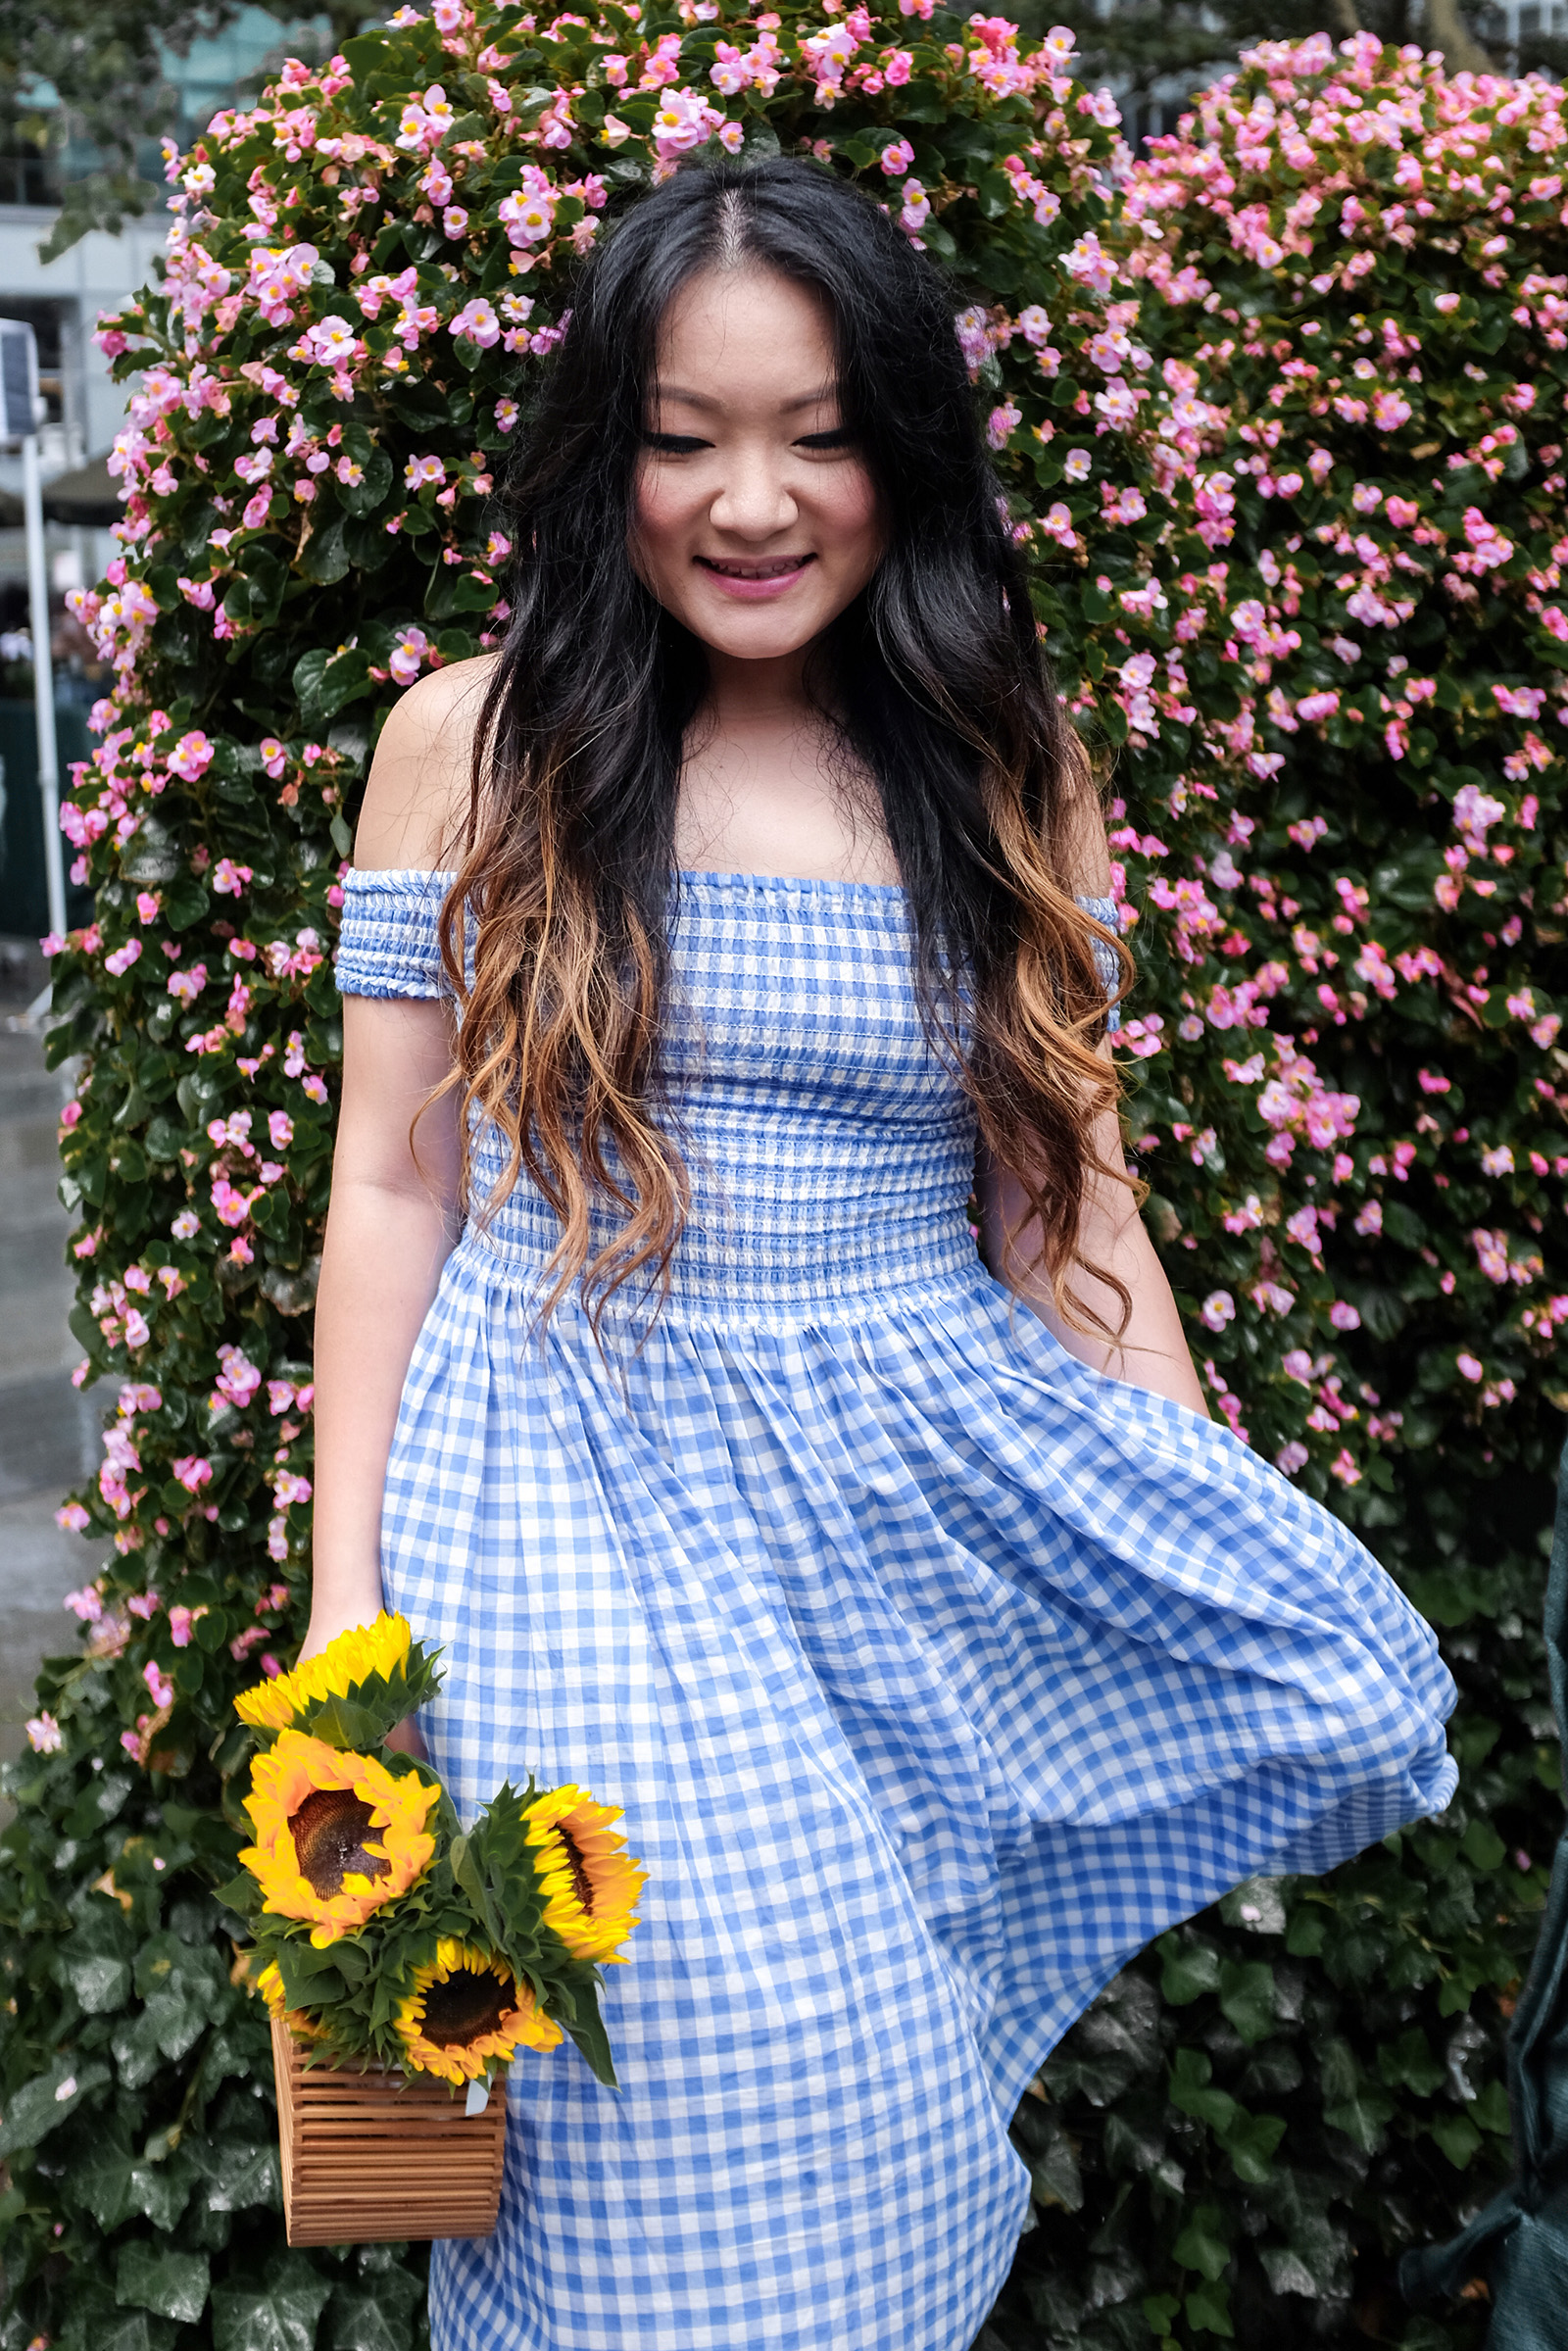 Cult Gaia Ark Bag - Blue Gingham Dress